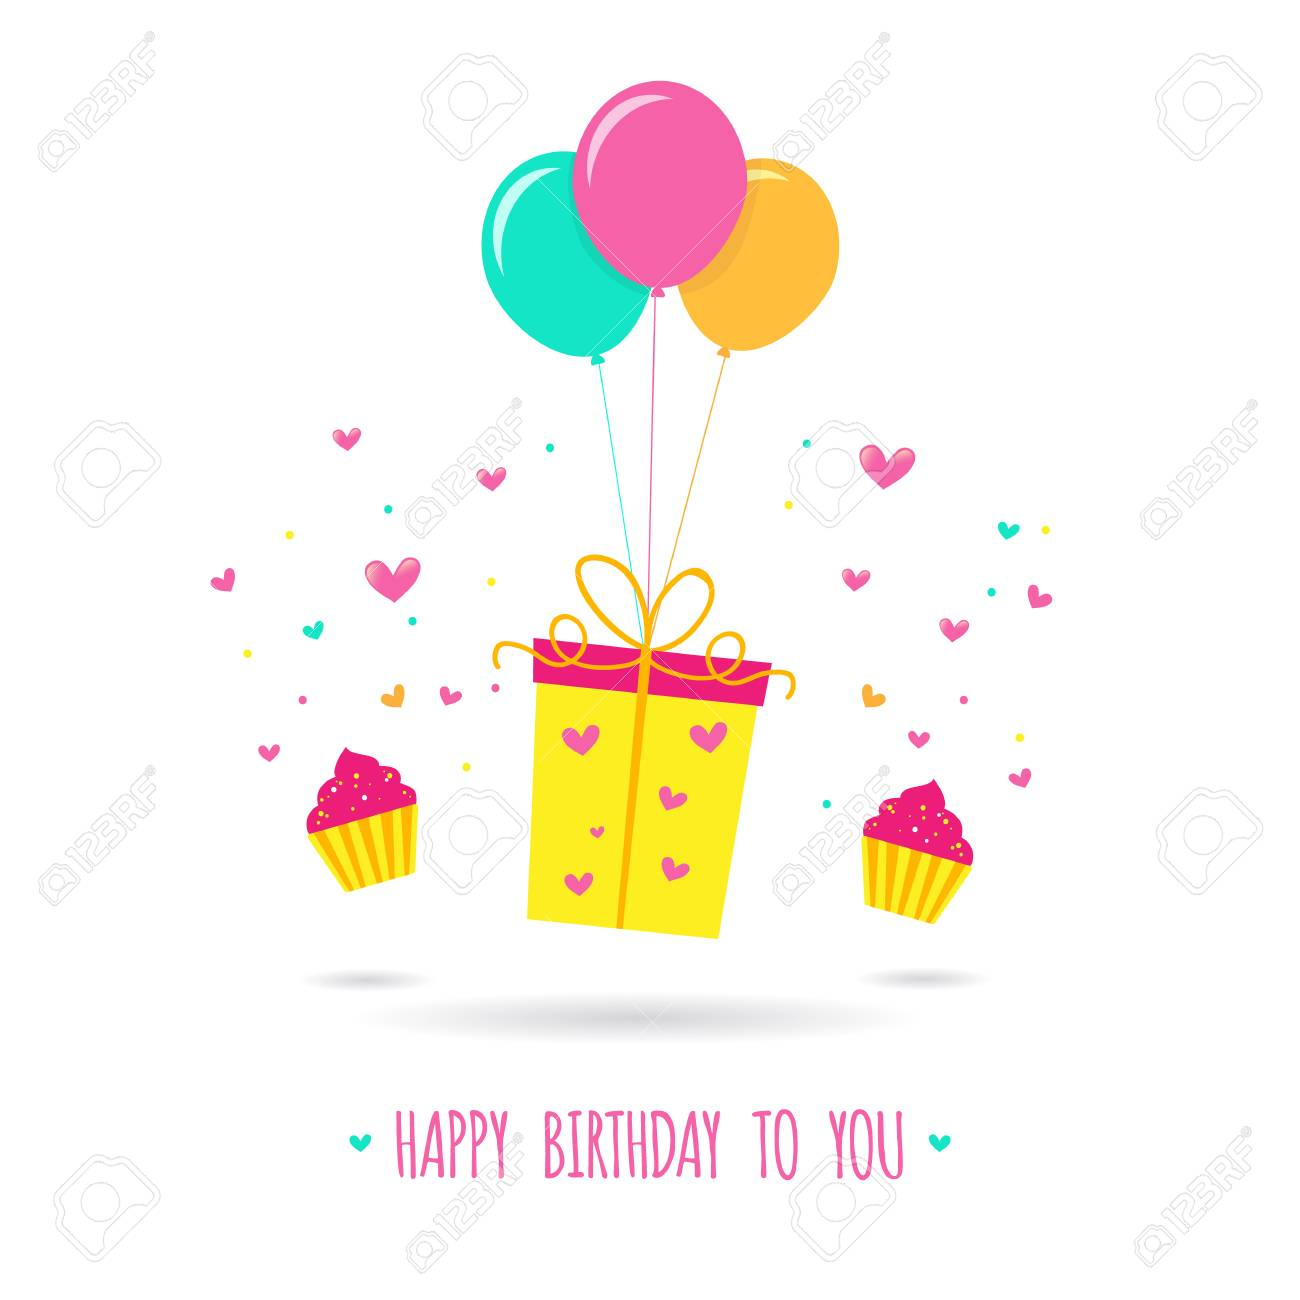 Happy Birthday Card Design Template Gift With Balloons Vector